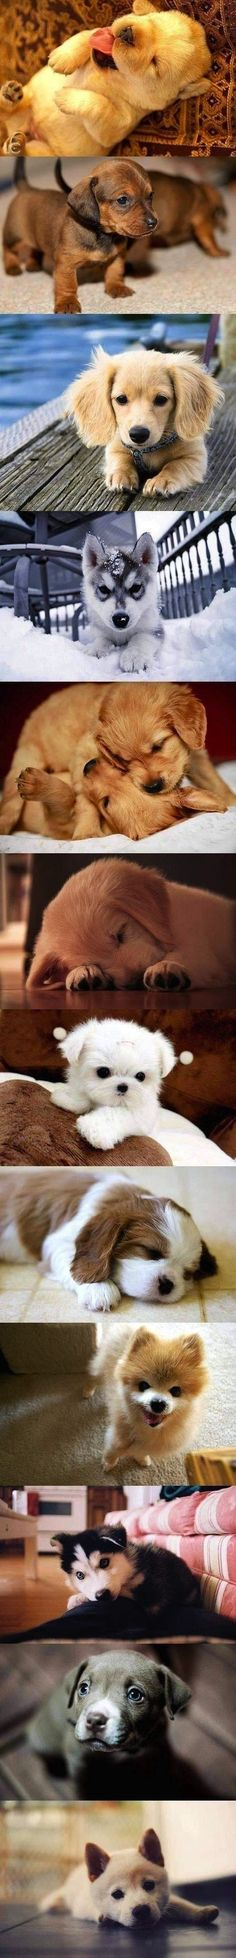 I love animal,i would take all of them,so cute!!!!!! We will add another soon enough!